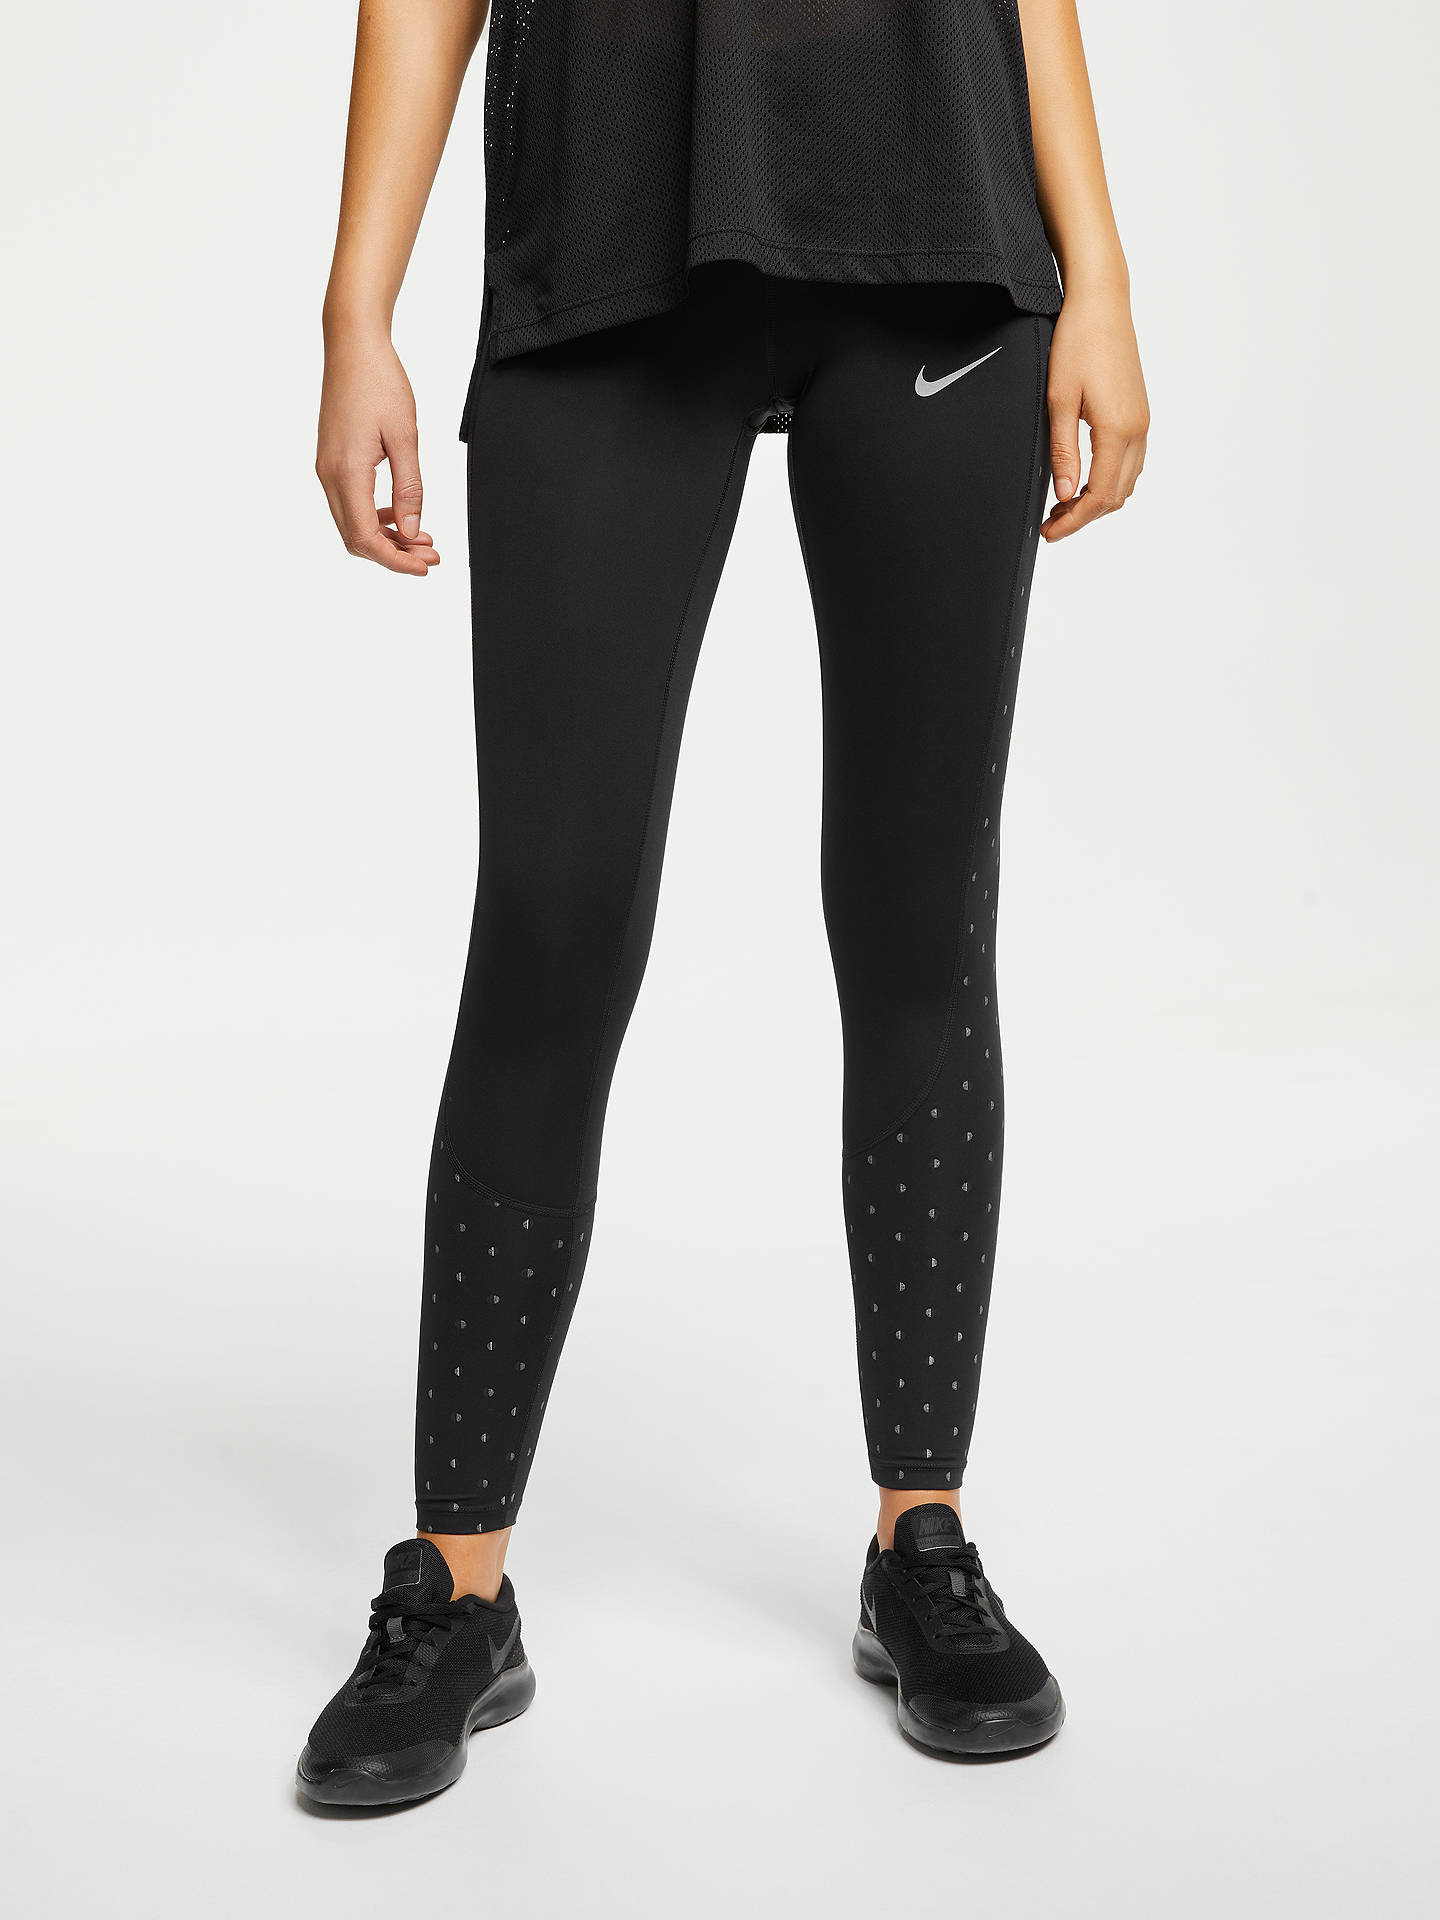 55dd8babe460d Buy Nike Racer Women's Running Tights, Black, XS Online at johnlewis. ...